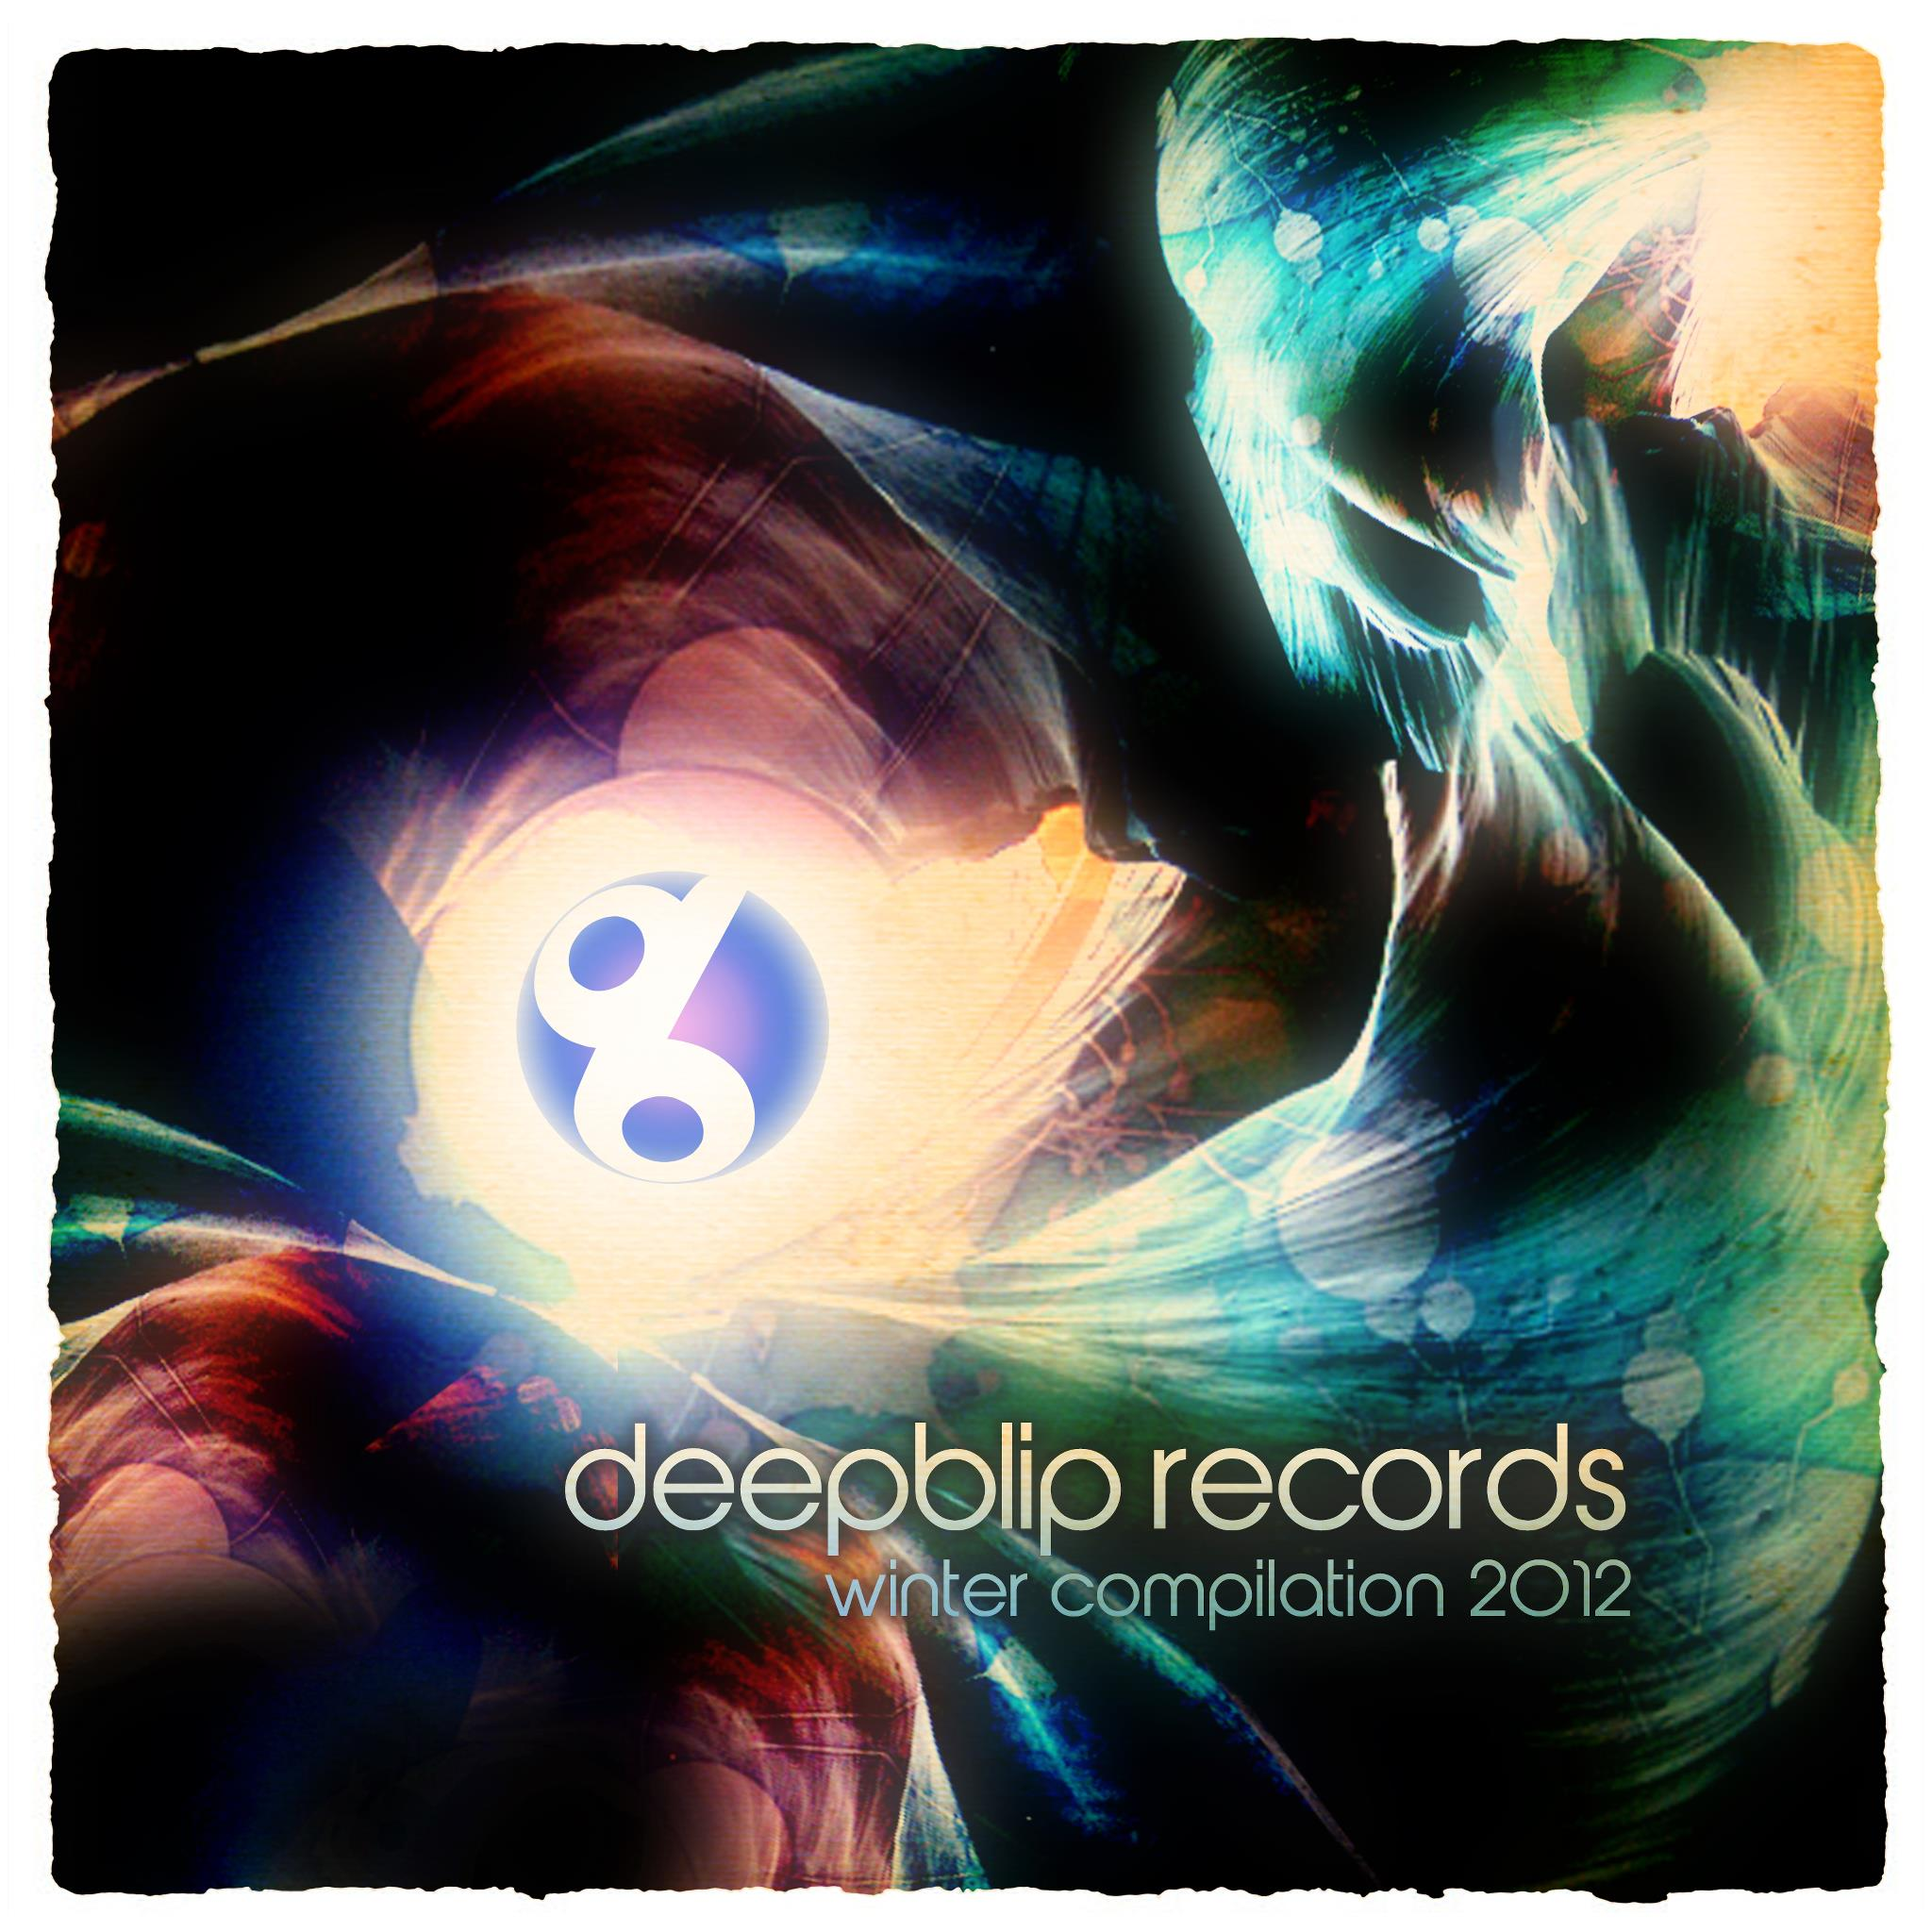 Deepblip Records 2012 Winter Compilation